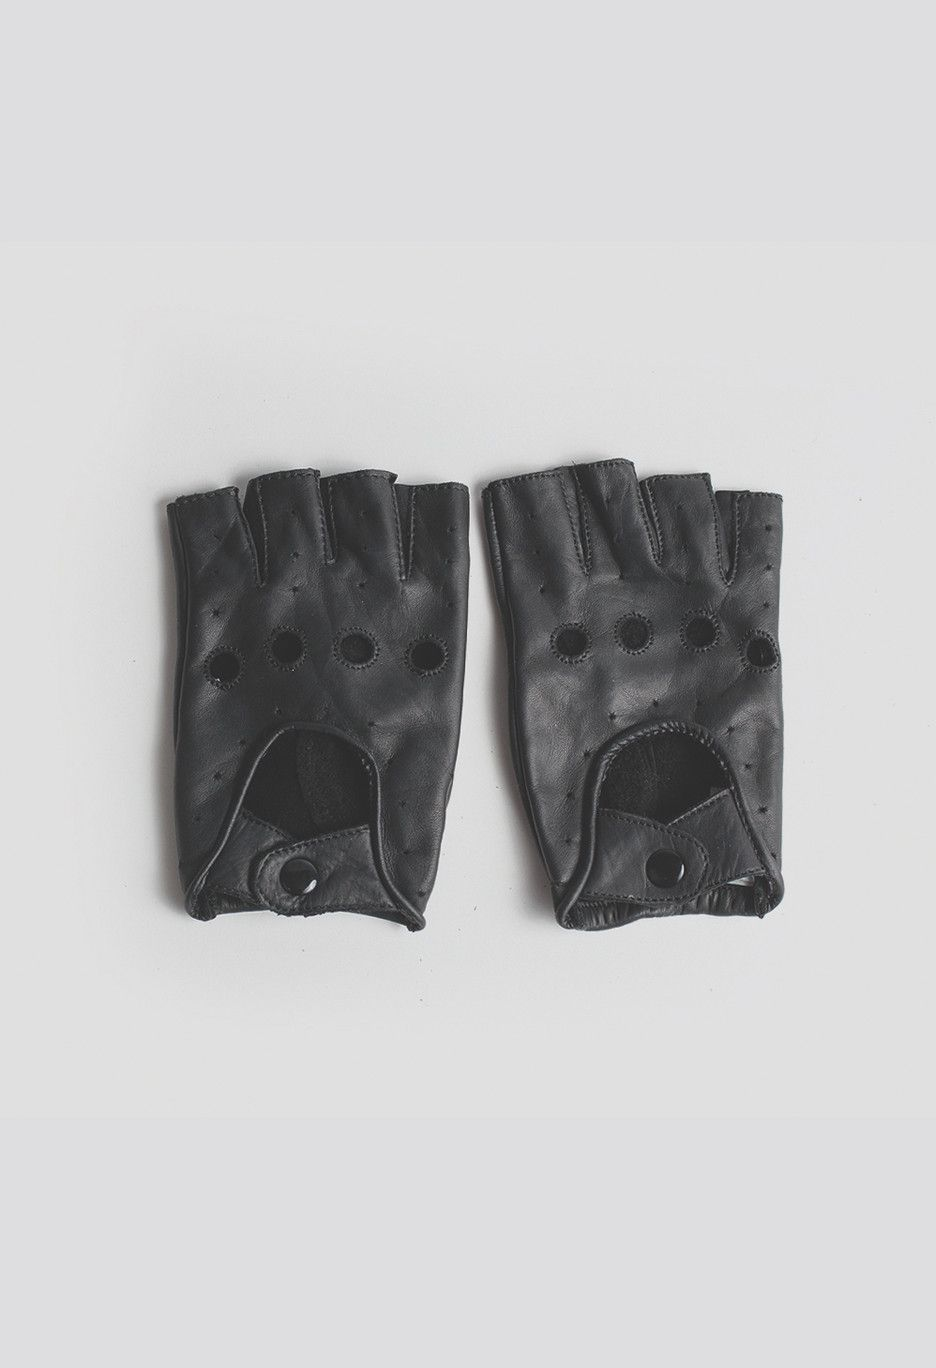 Black leather cut off gloves - Genuine Leather Cut Off Driving Gloves In Black